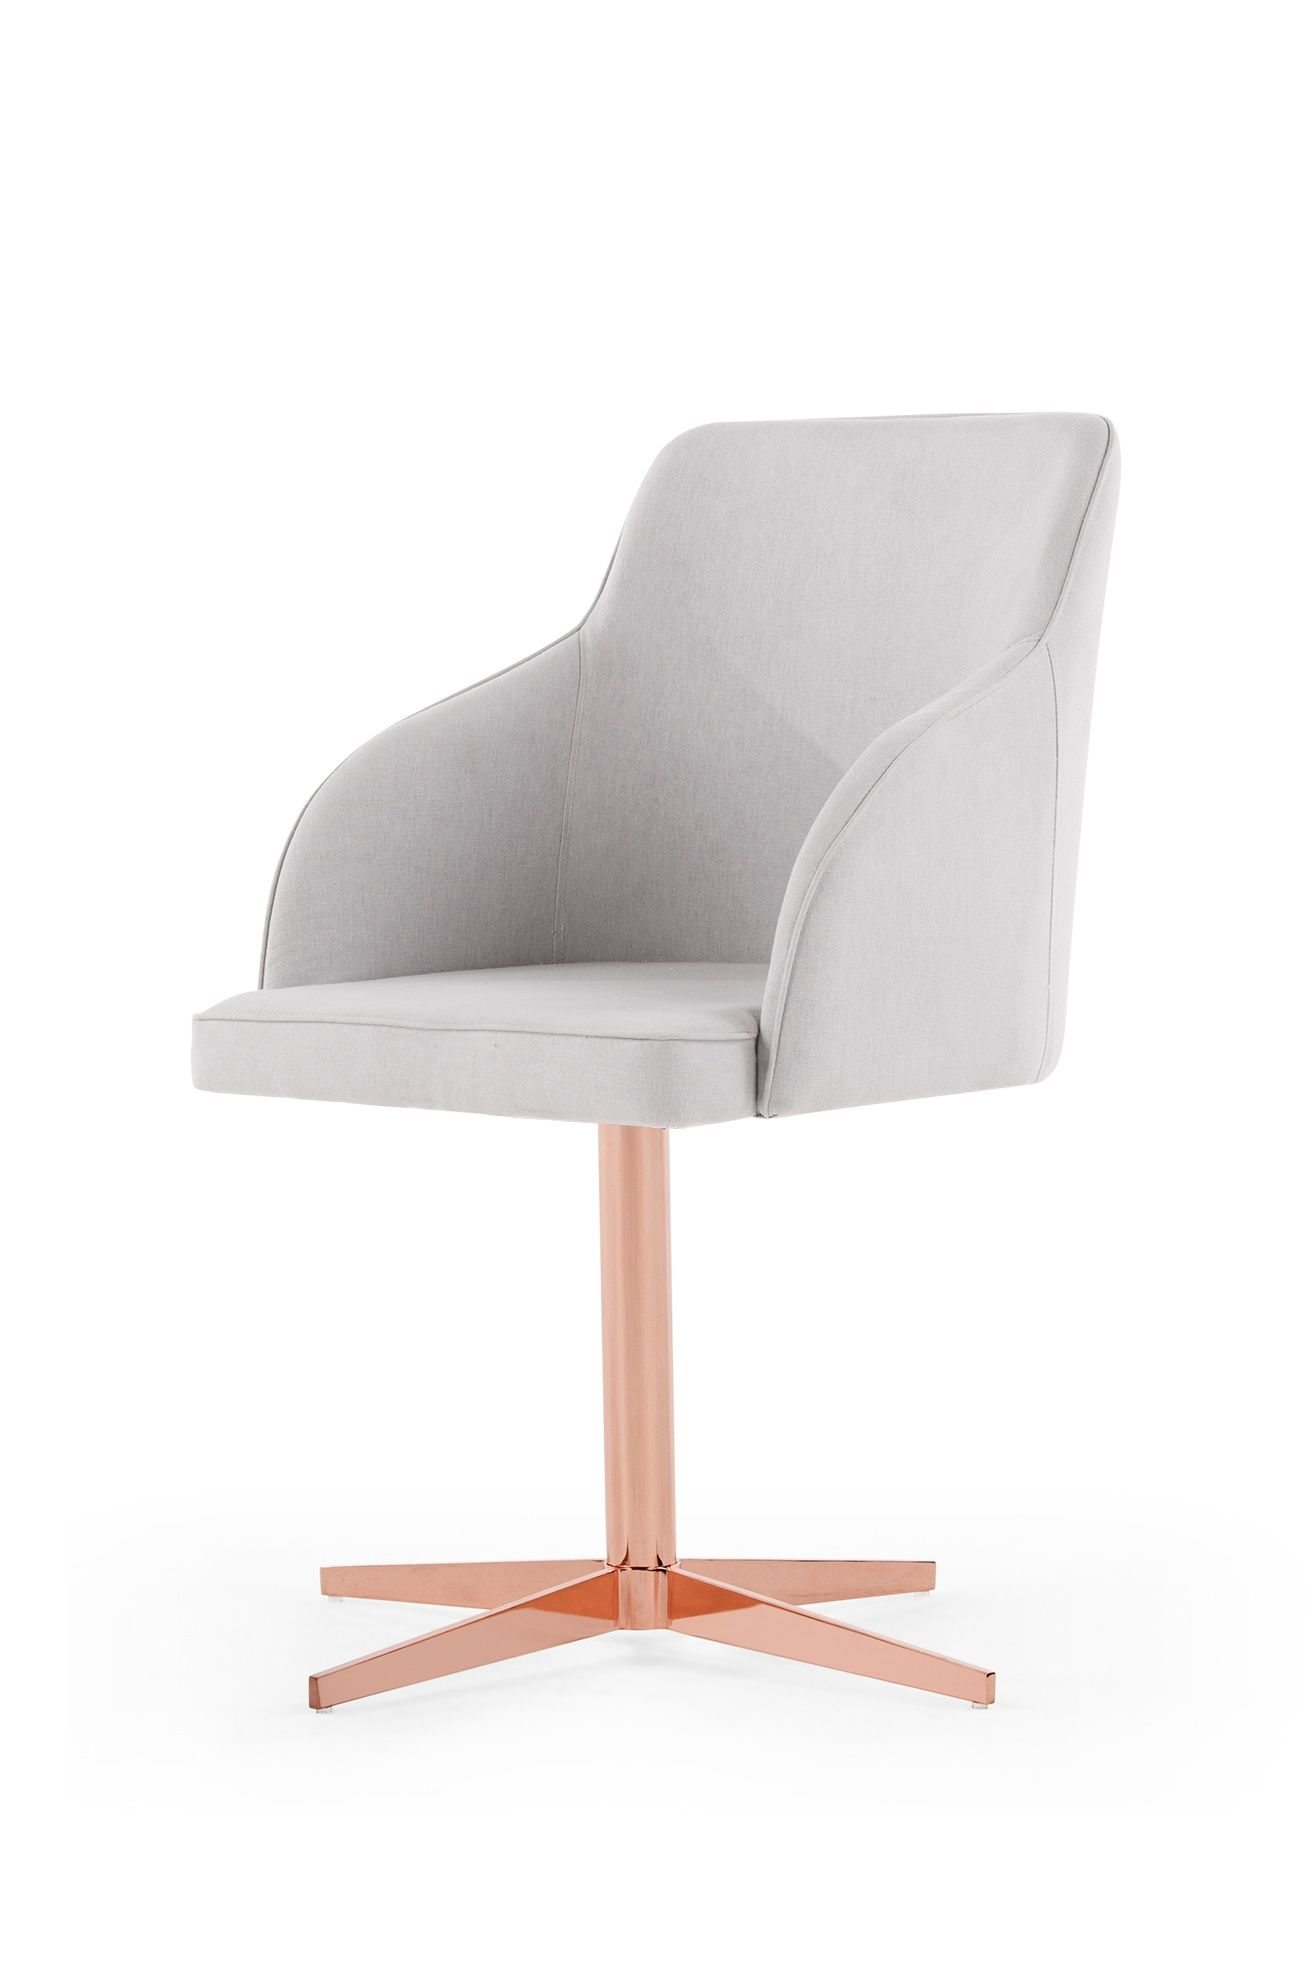 keira office chair, cloud grey and copper | gray, bedrooms and room